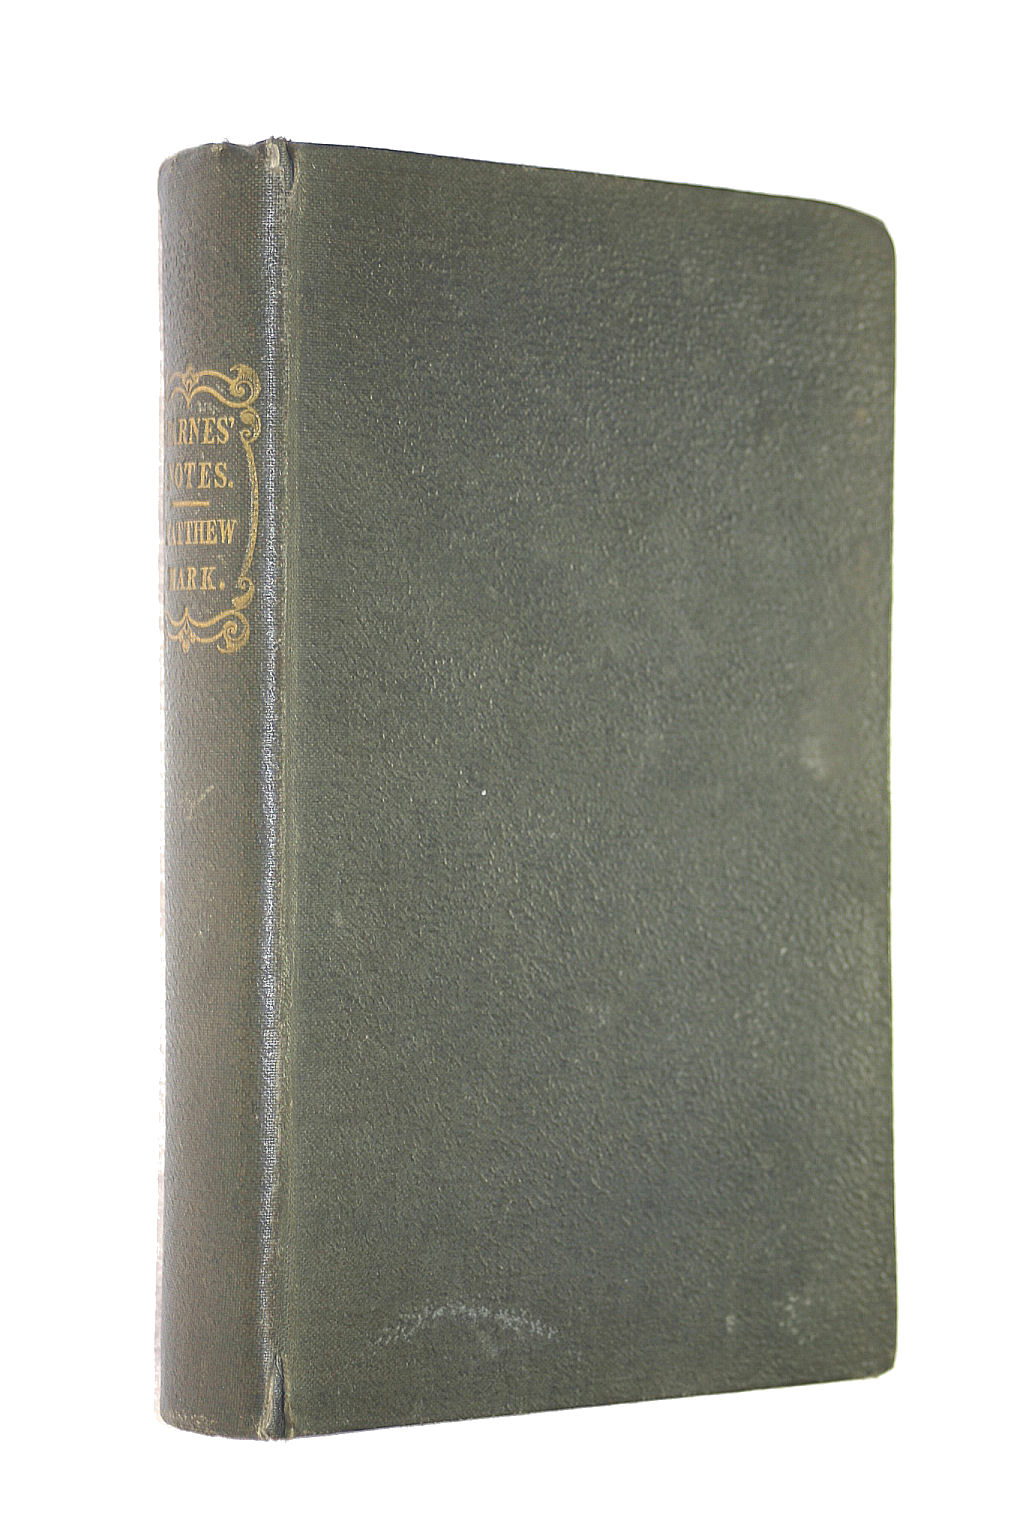 Image for Notes On The New Testament Explanatory And Practical, Vol.I, Matthew-Mark